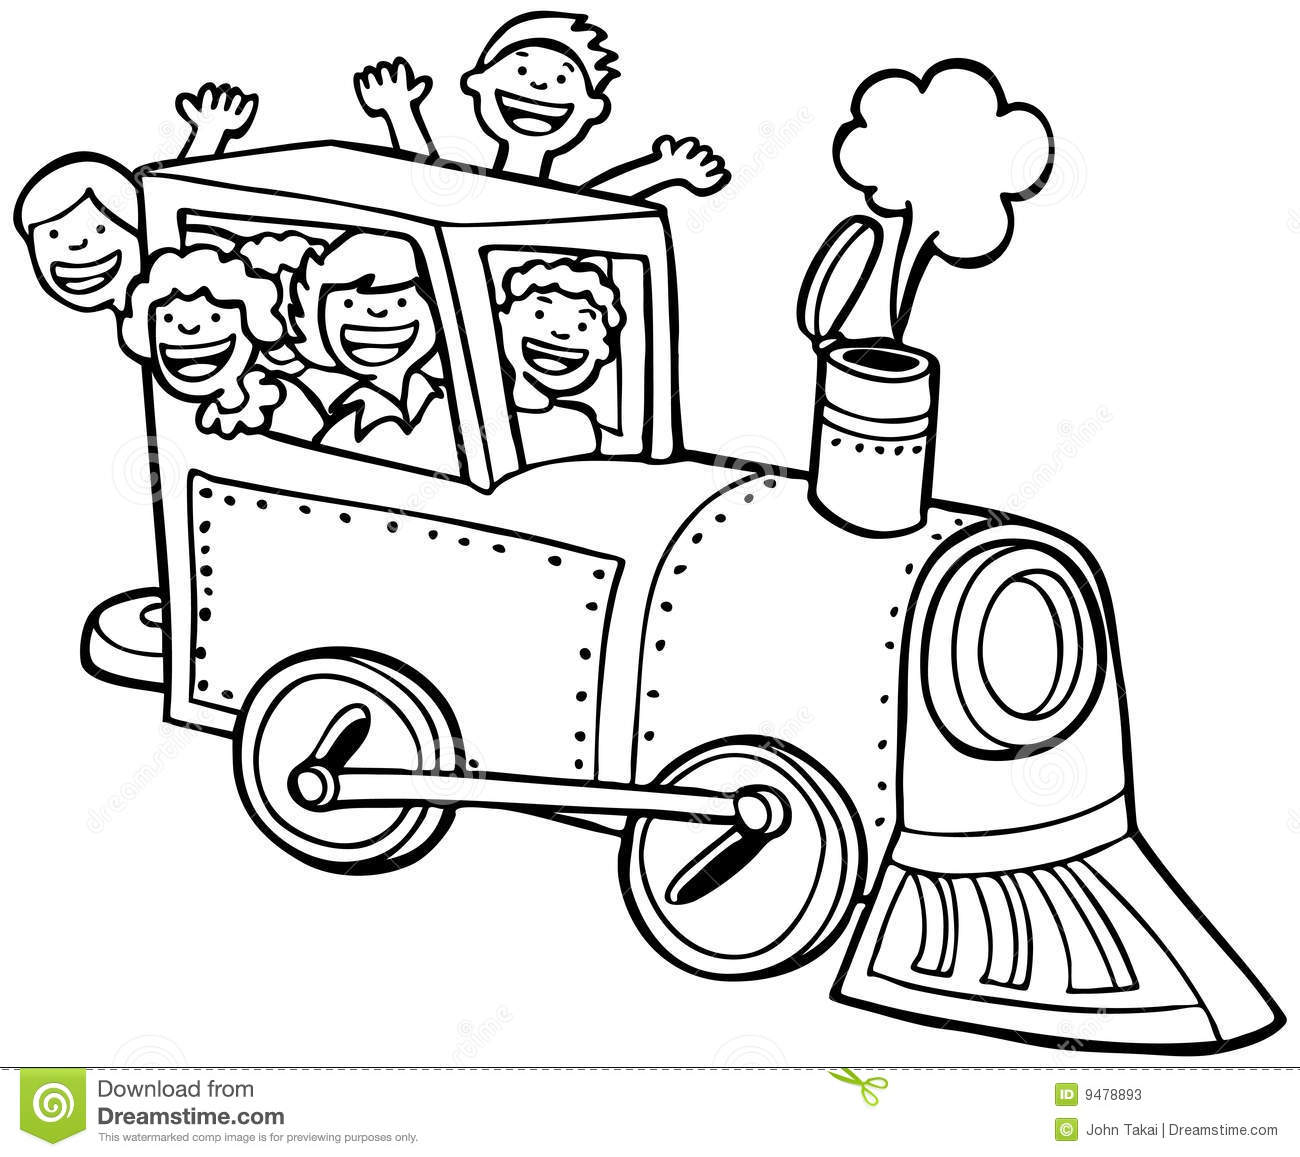 electric train clipart black and white - photo #14